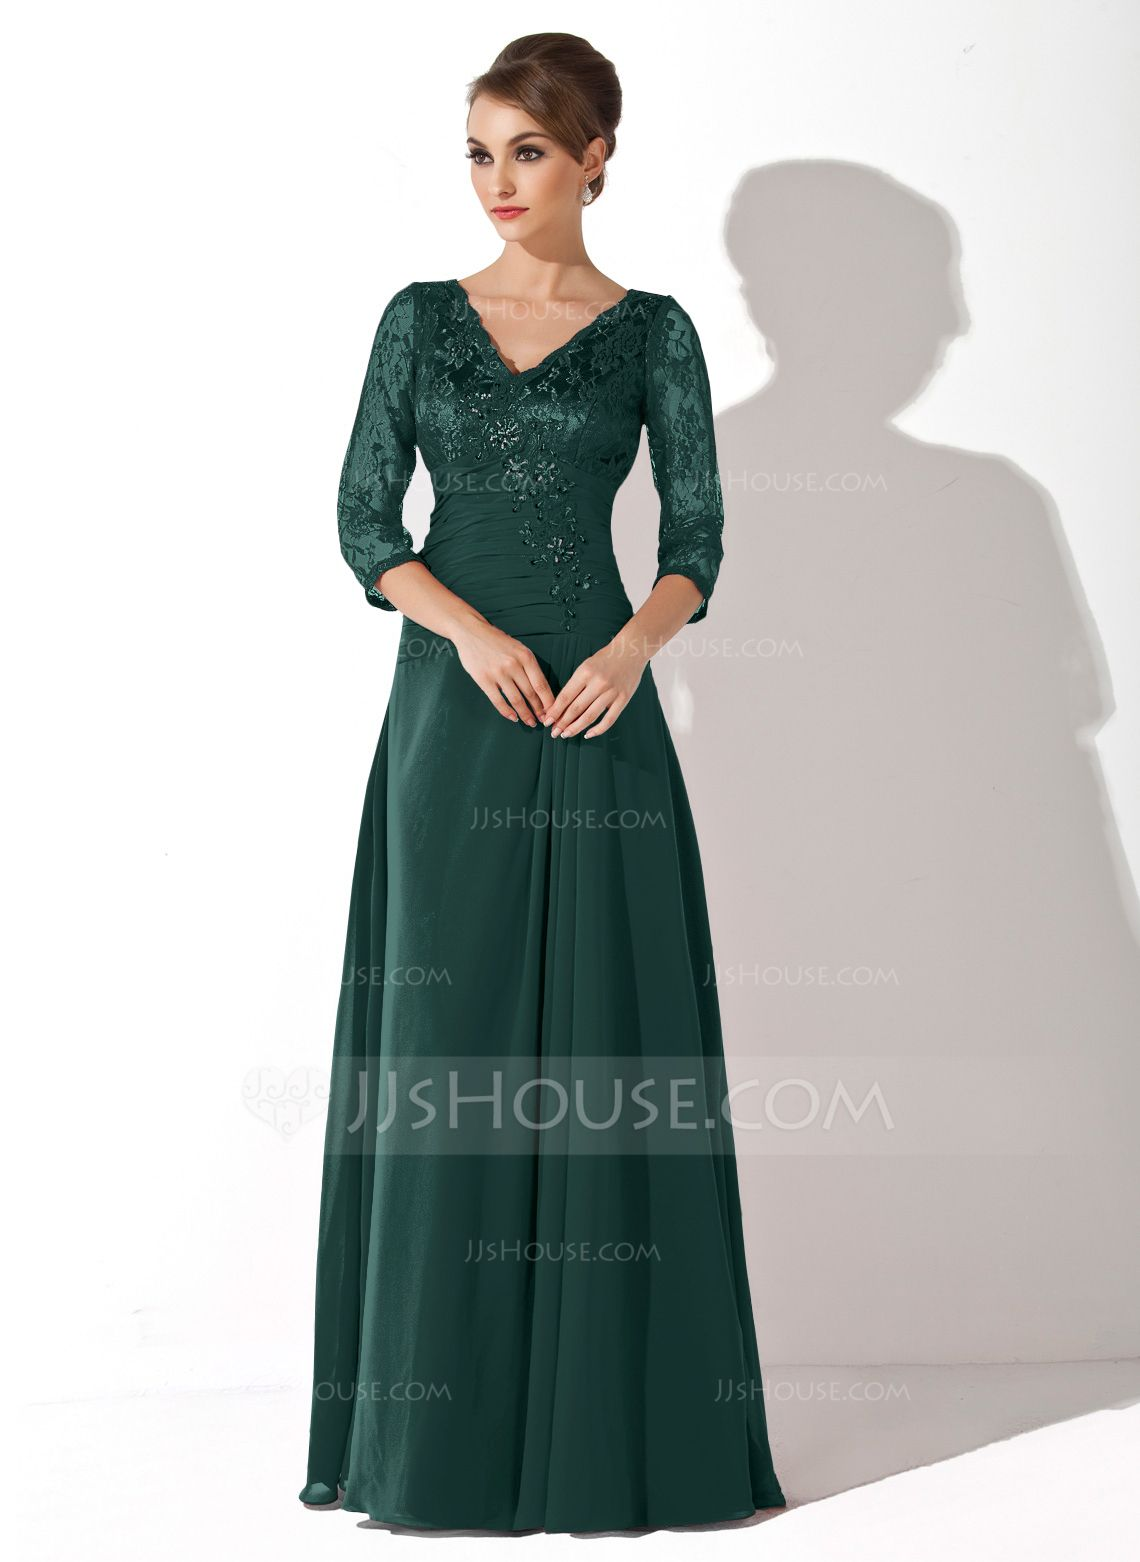 41ae3a65331 A-Line Princess V-neck Floor-Length Chiffon Lace Mother of the Bride Dress  With Ruffle Beading Sequins (008006076) - JJsHouse